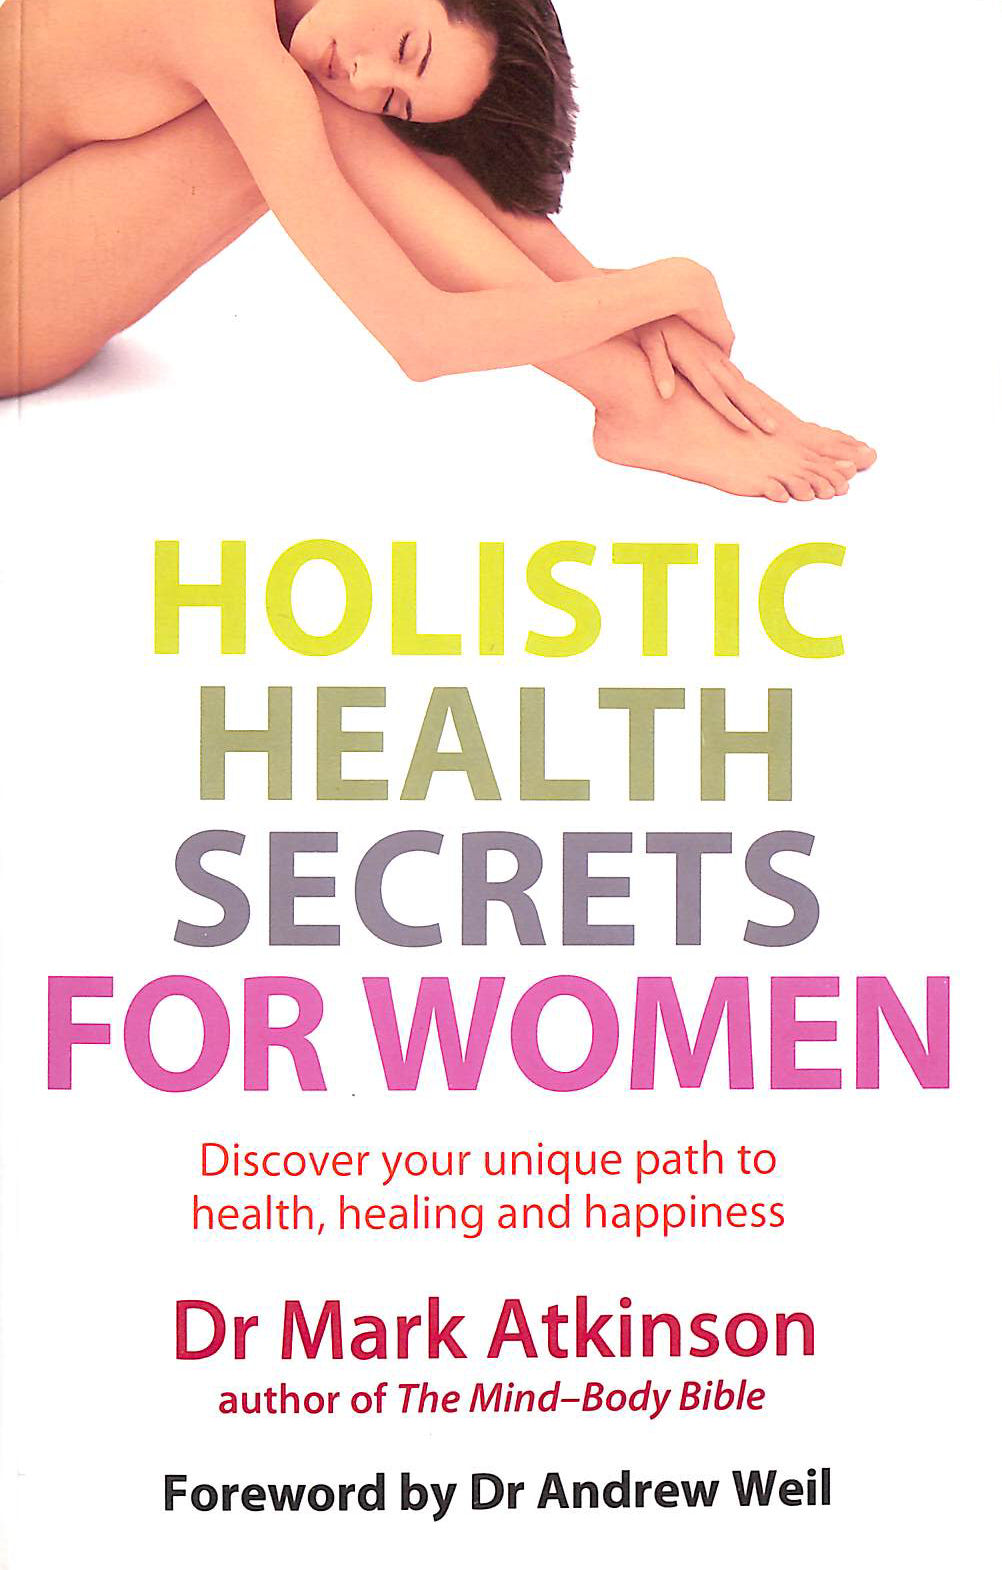 Image for Holistic Health Secrets For Women: Discover Your Unique Path To Health, Healing And Happiness